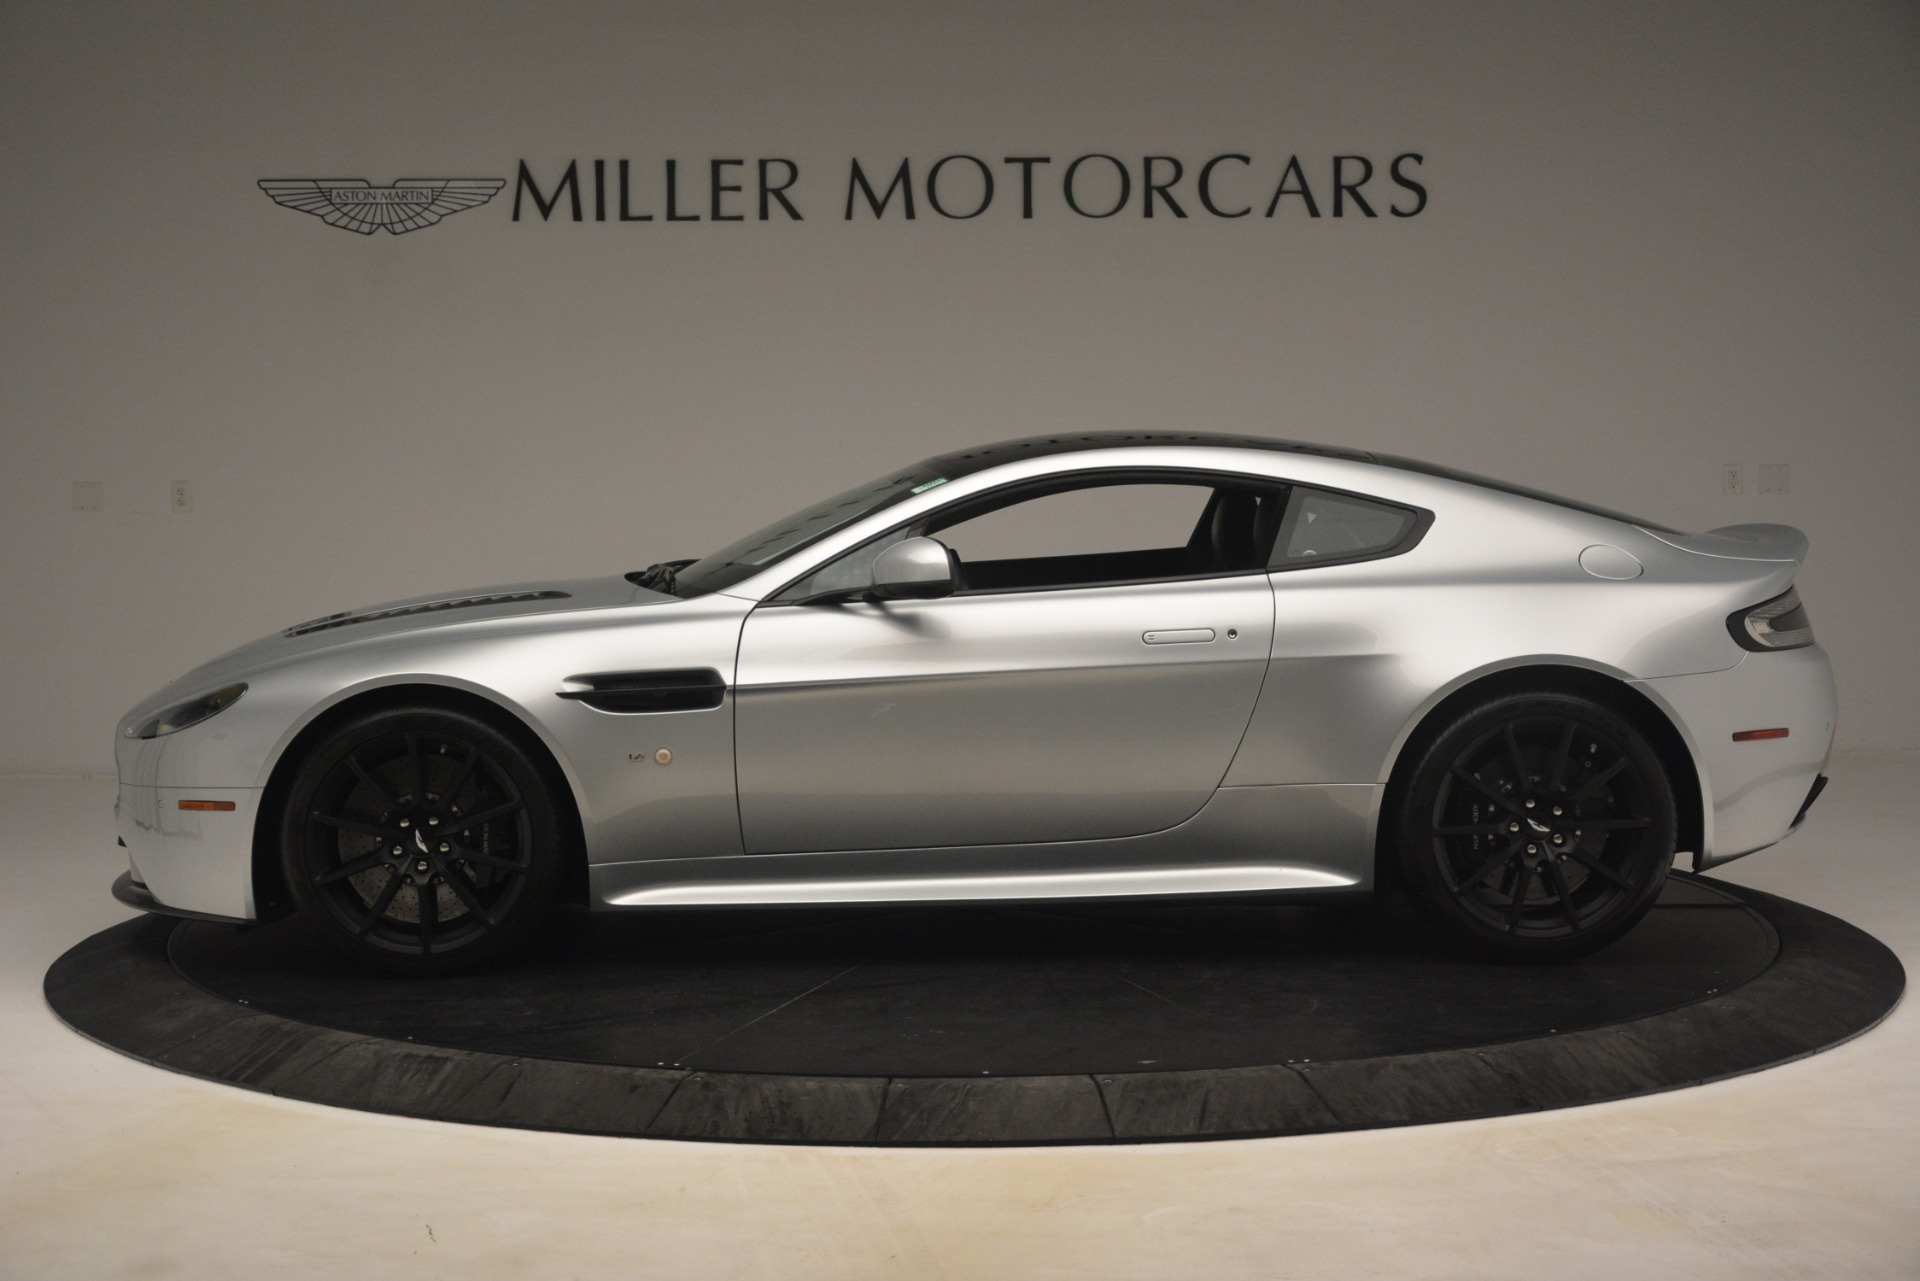 Used 2015 Aston Martin V12 Vantage S Coupe For Sale In Greenwich, CT 3206_p3